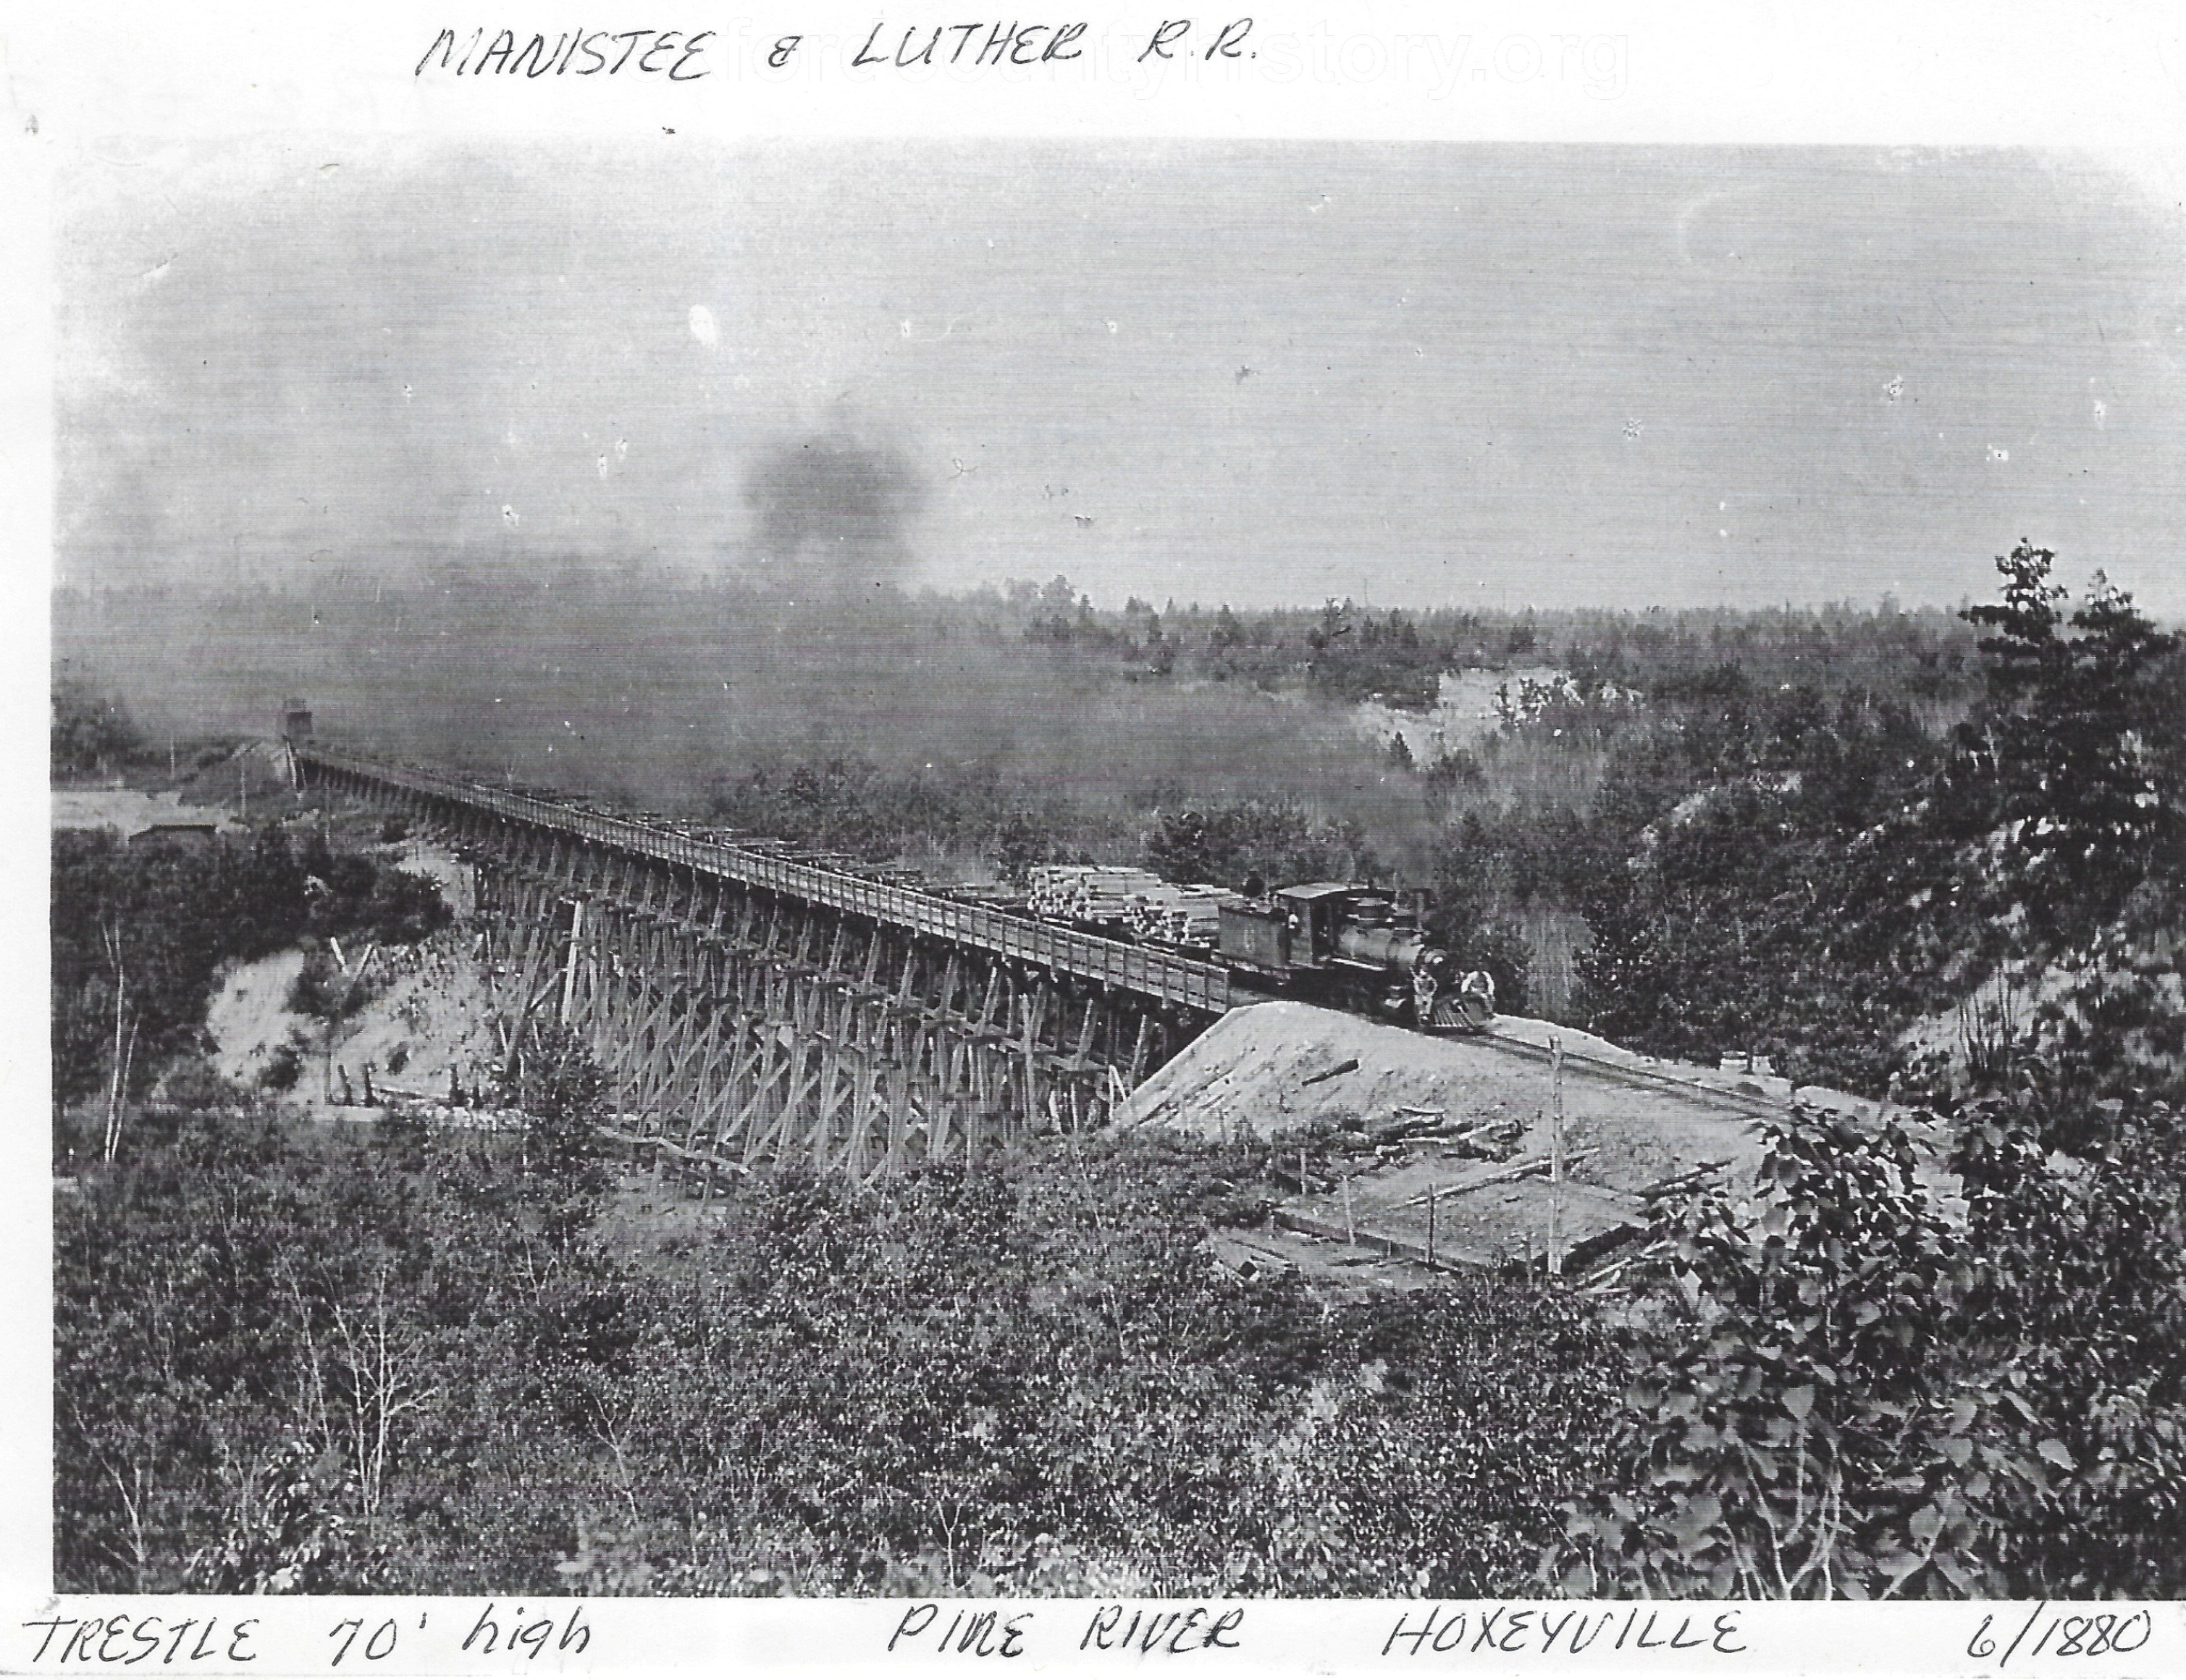 Hoxeyville-Railroad-Manistee-And-Luther-Railroad-Bridge